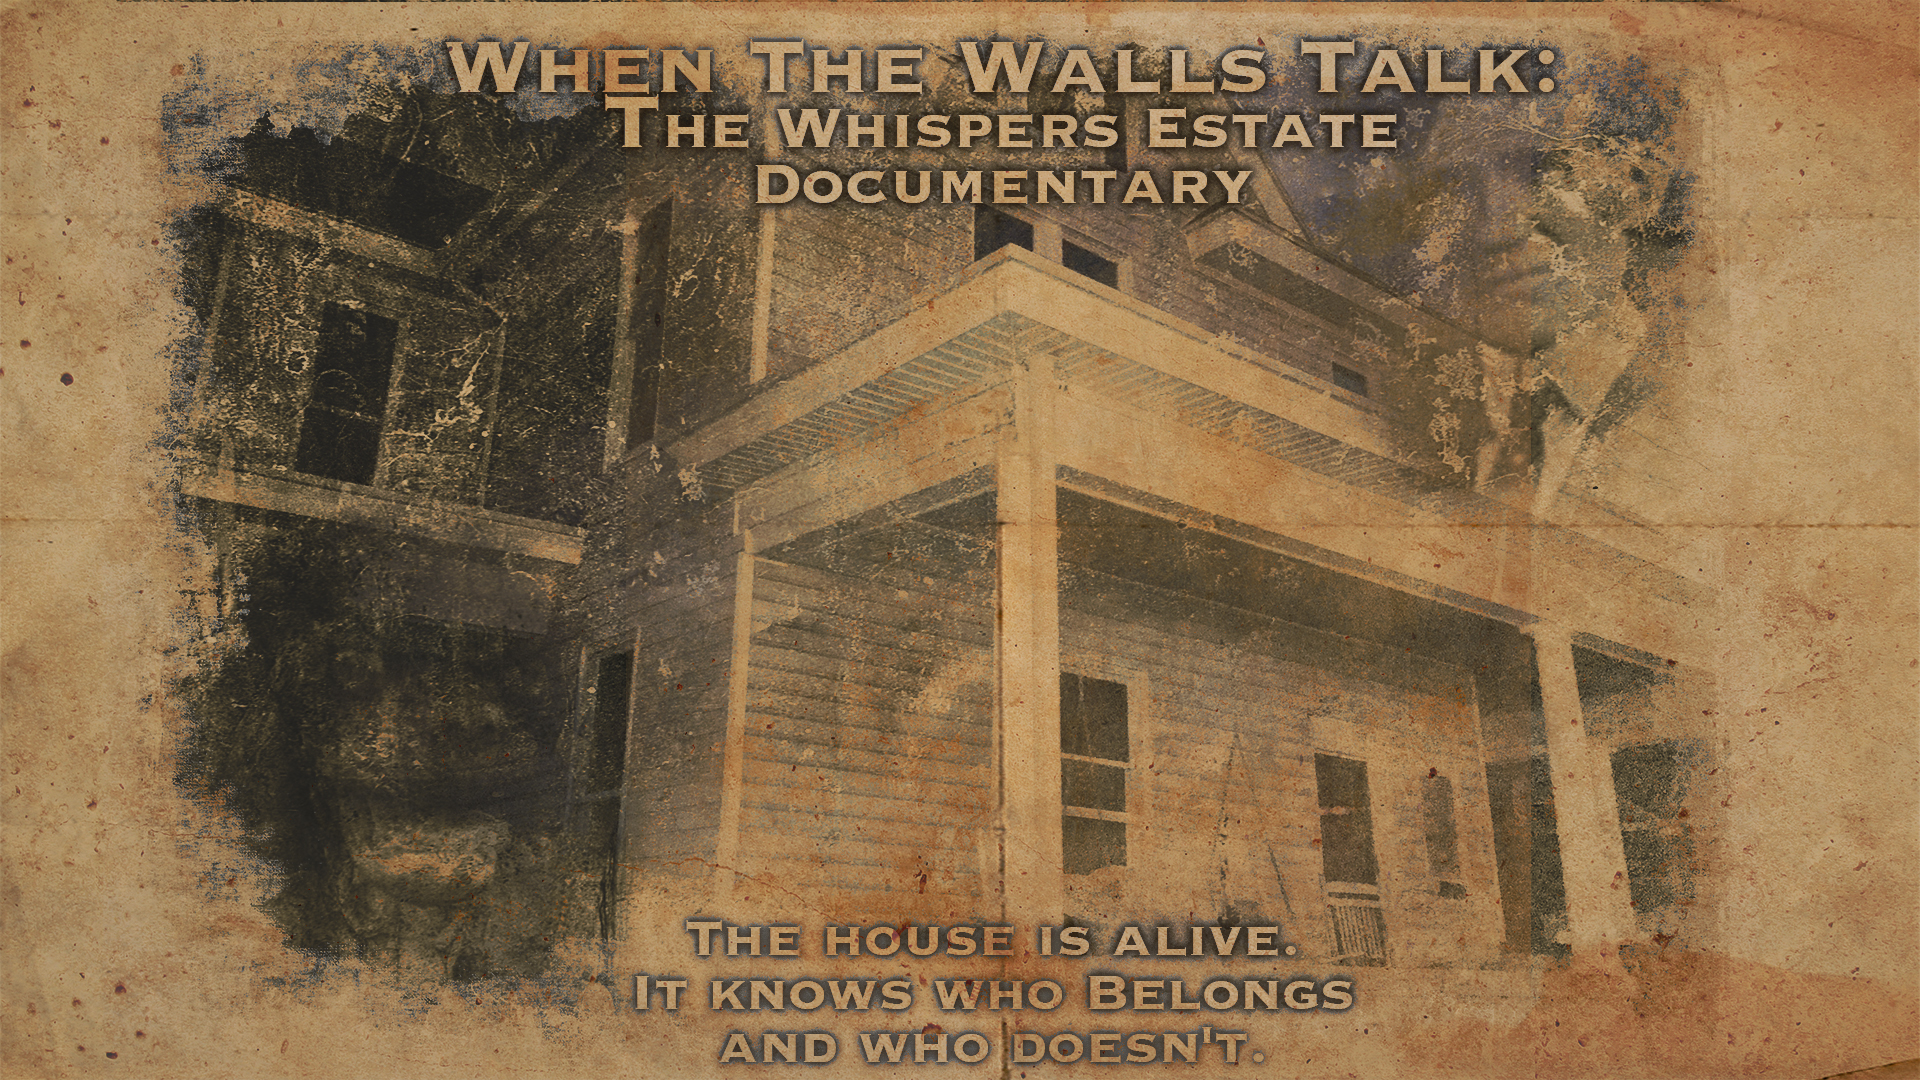 When The Walls Talk: The Whispers Estate Documentary